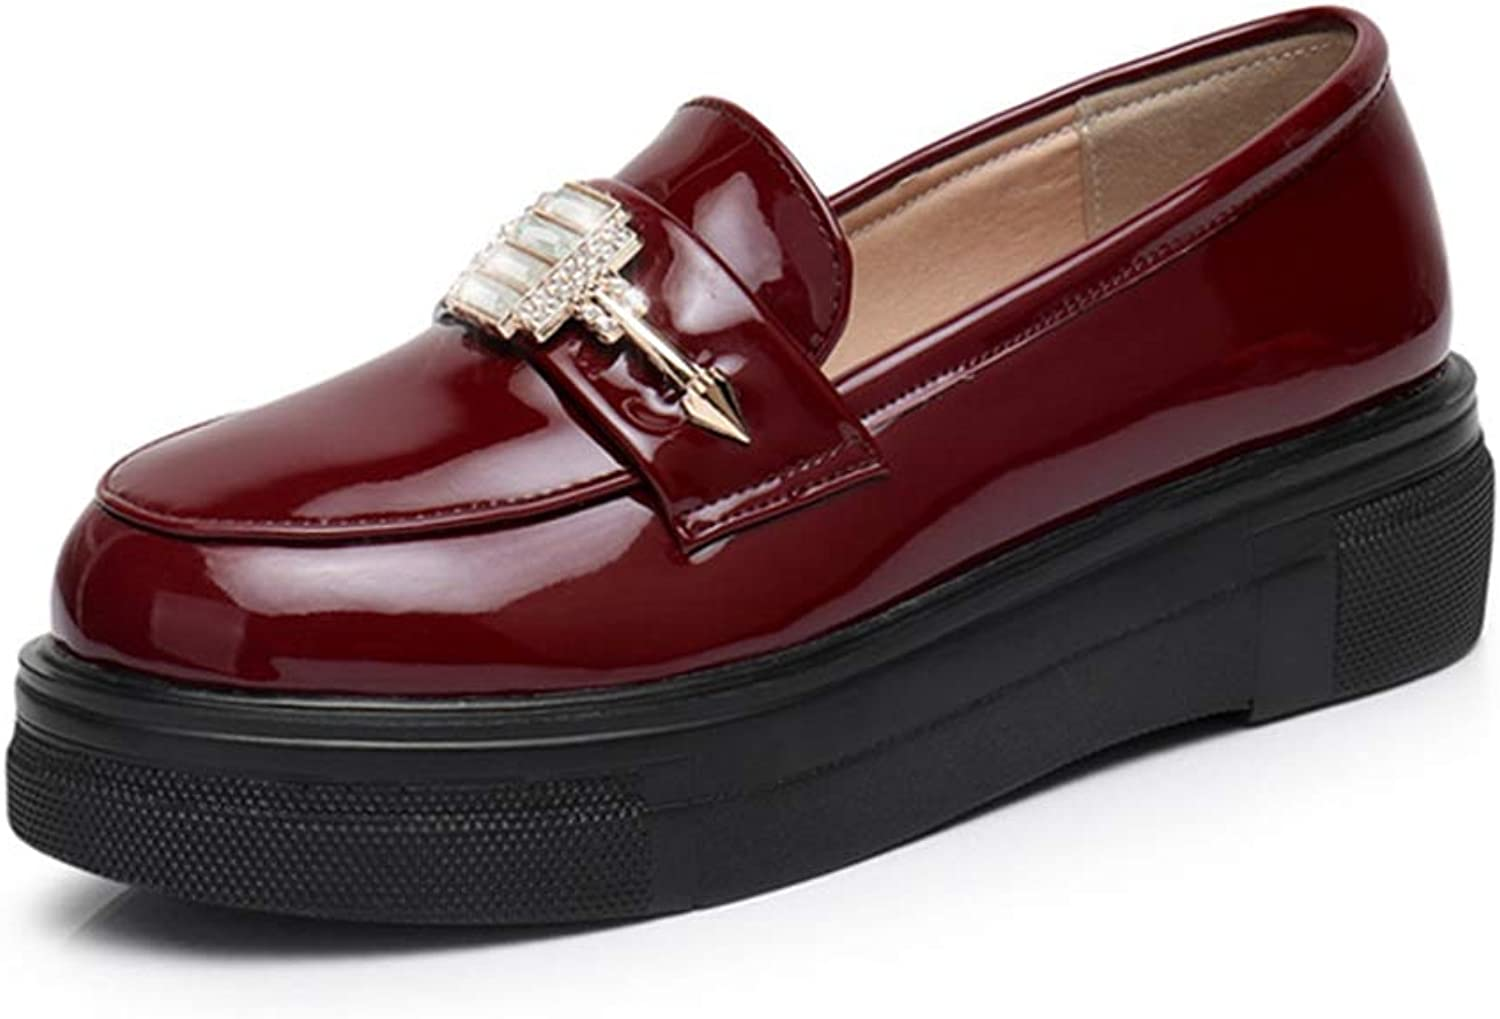 Fay Waters Womens Leather Loafers Crystal Decorated Waterproof Platform Breathable Fashion shoes